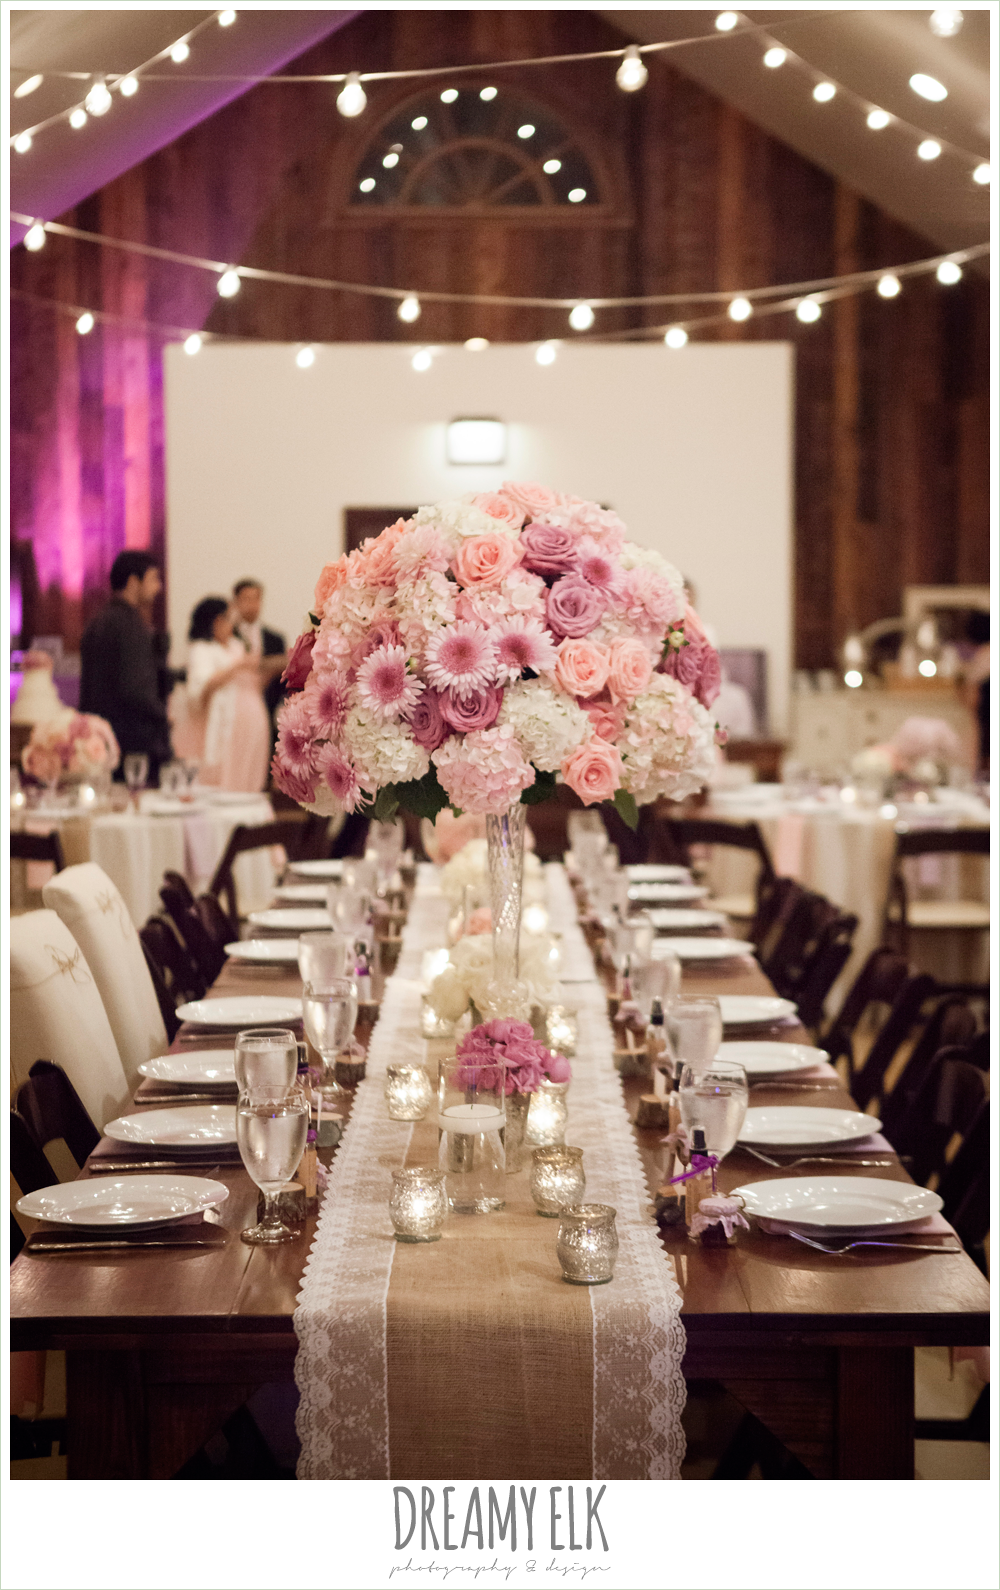 tall blush pink and purple table flower arrangements, burlap and lace table runner, rustic chic wedding {dreamy elk photography and design}